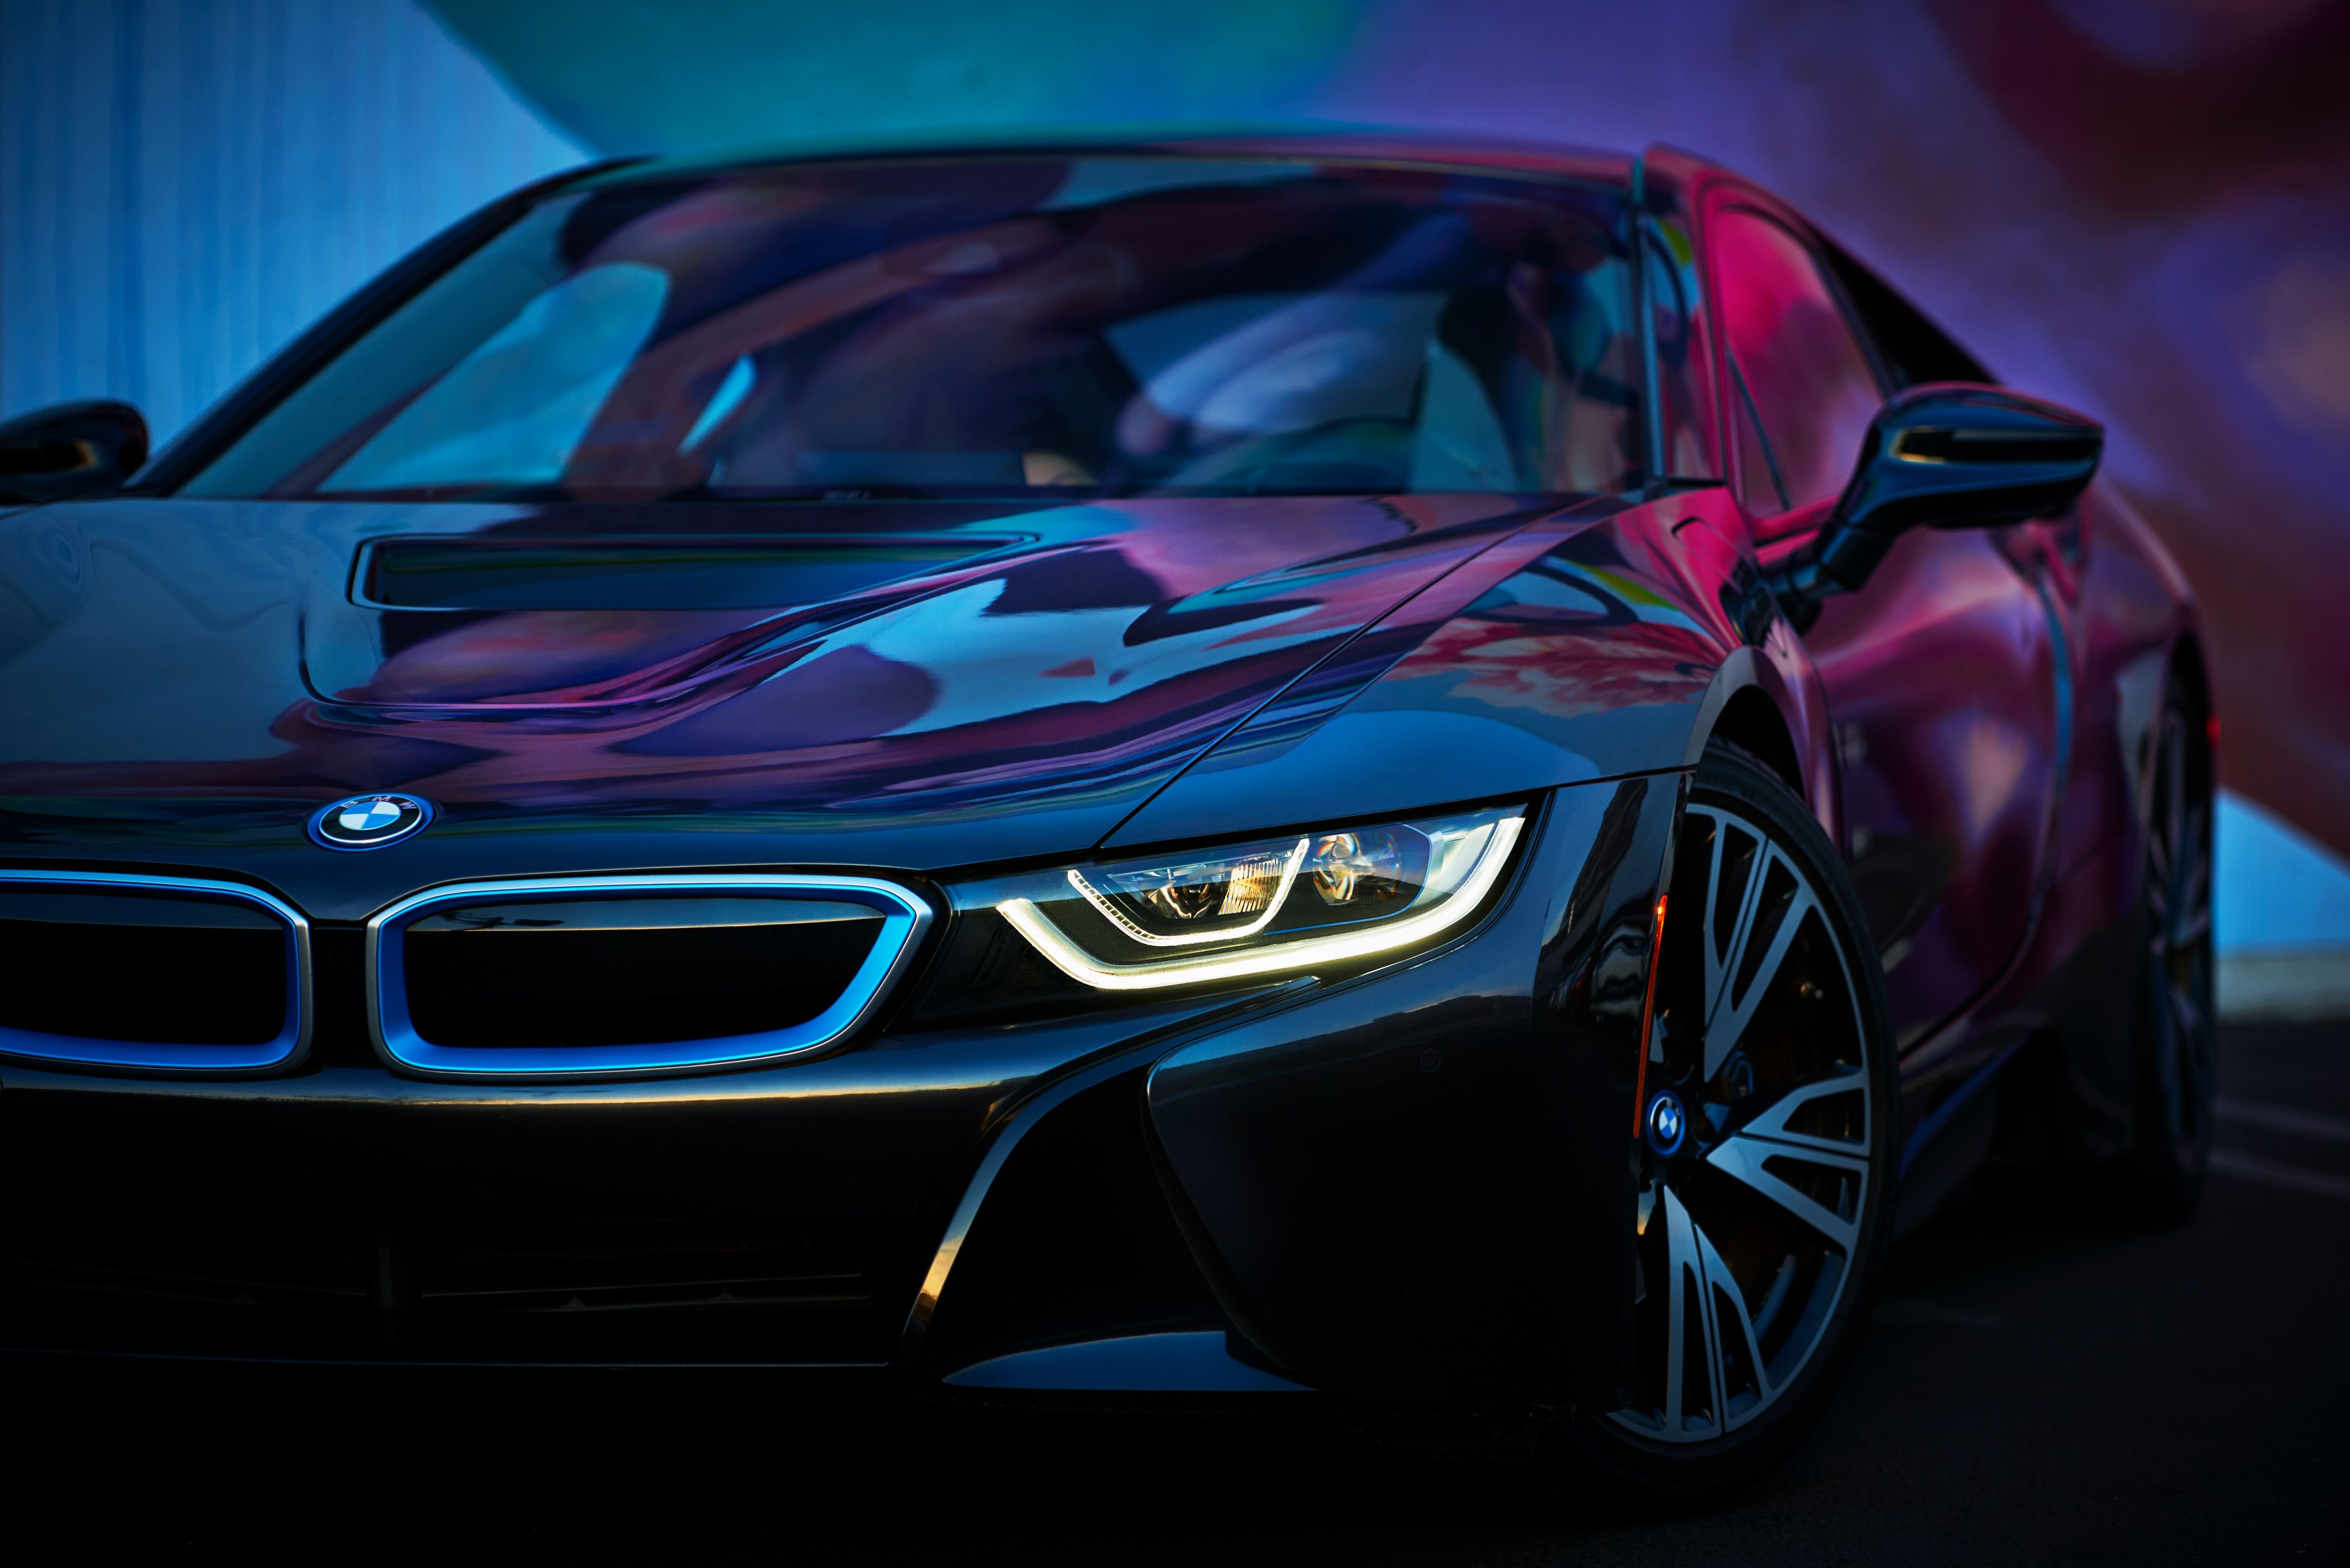 This Is One Of Bmw S Future Cars That Uses 2 Systems In The System Which Is An Electric System And A Photo Engine And A Futur Bmw I8 Bmw Wallpapers Super Cars